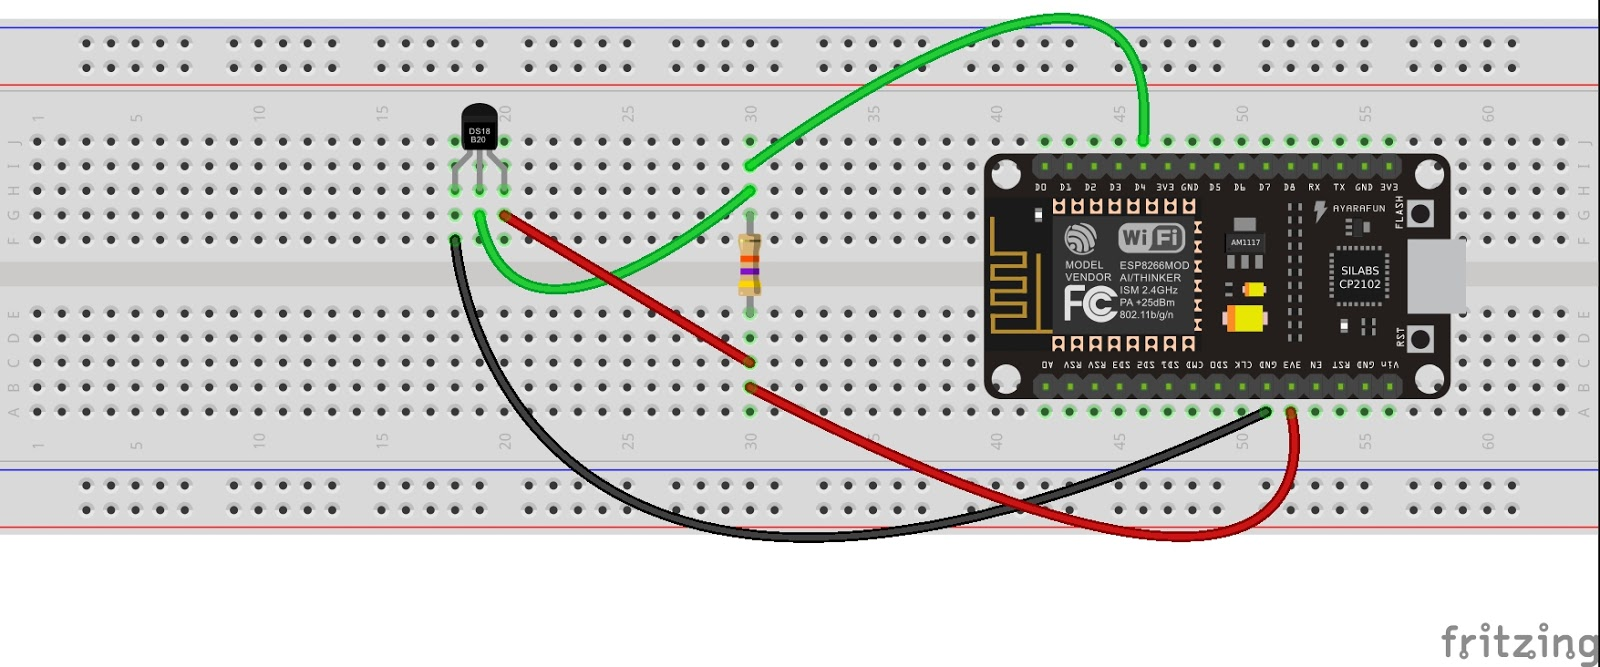 medium resolution of step 3 upload ds18b20 temperature sensor data to thingspeak from esp8266 nodemcu